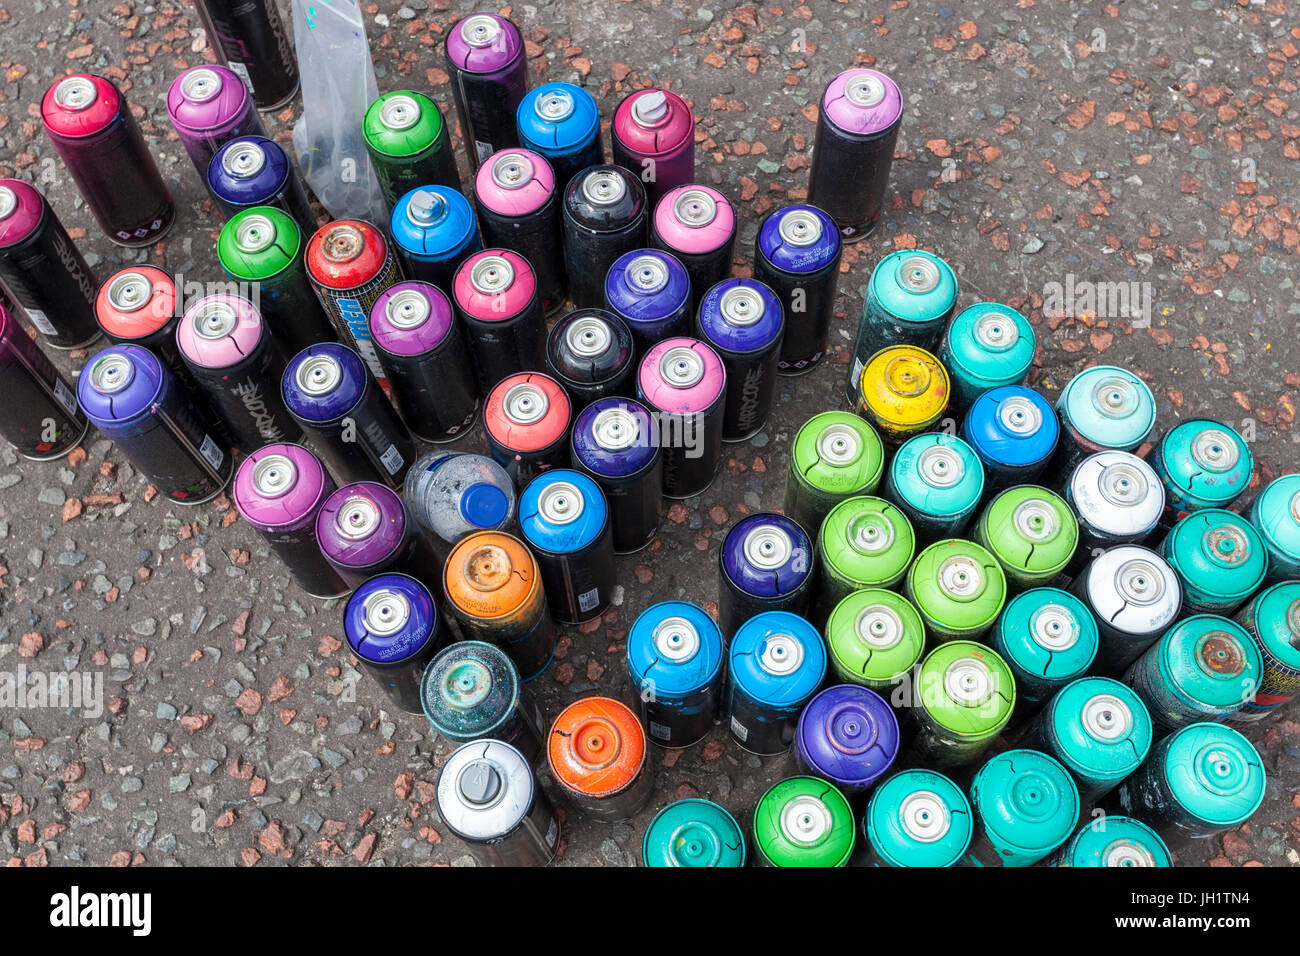 Hardcore aerosol spray paint cans - Stock Image